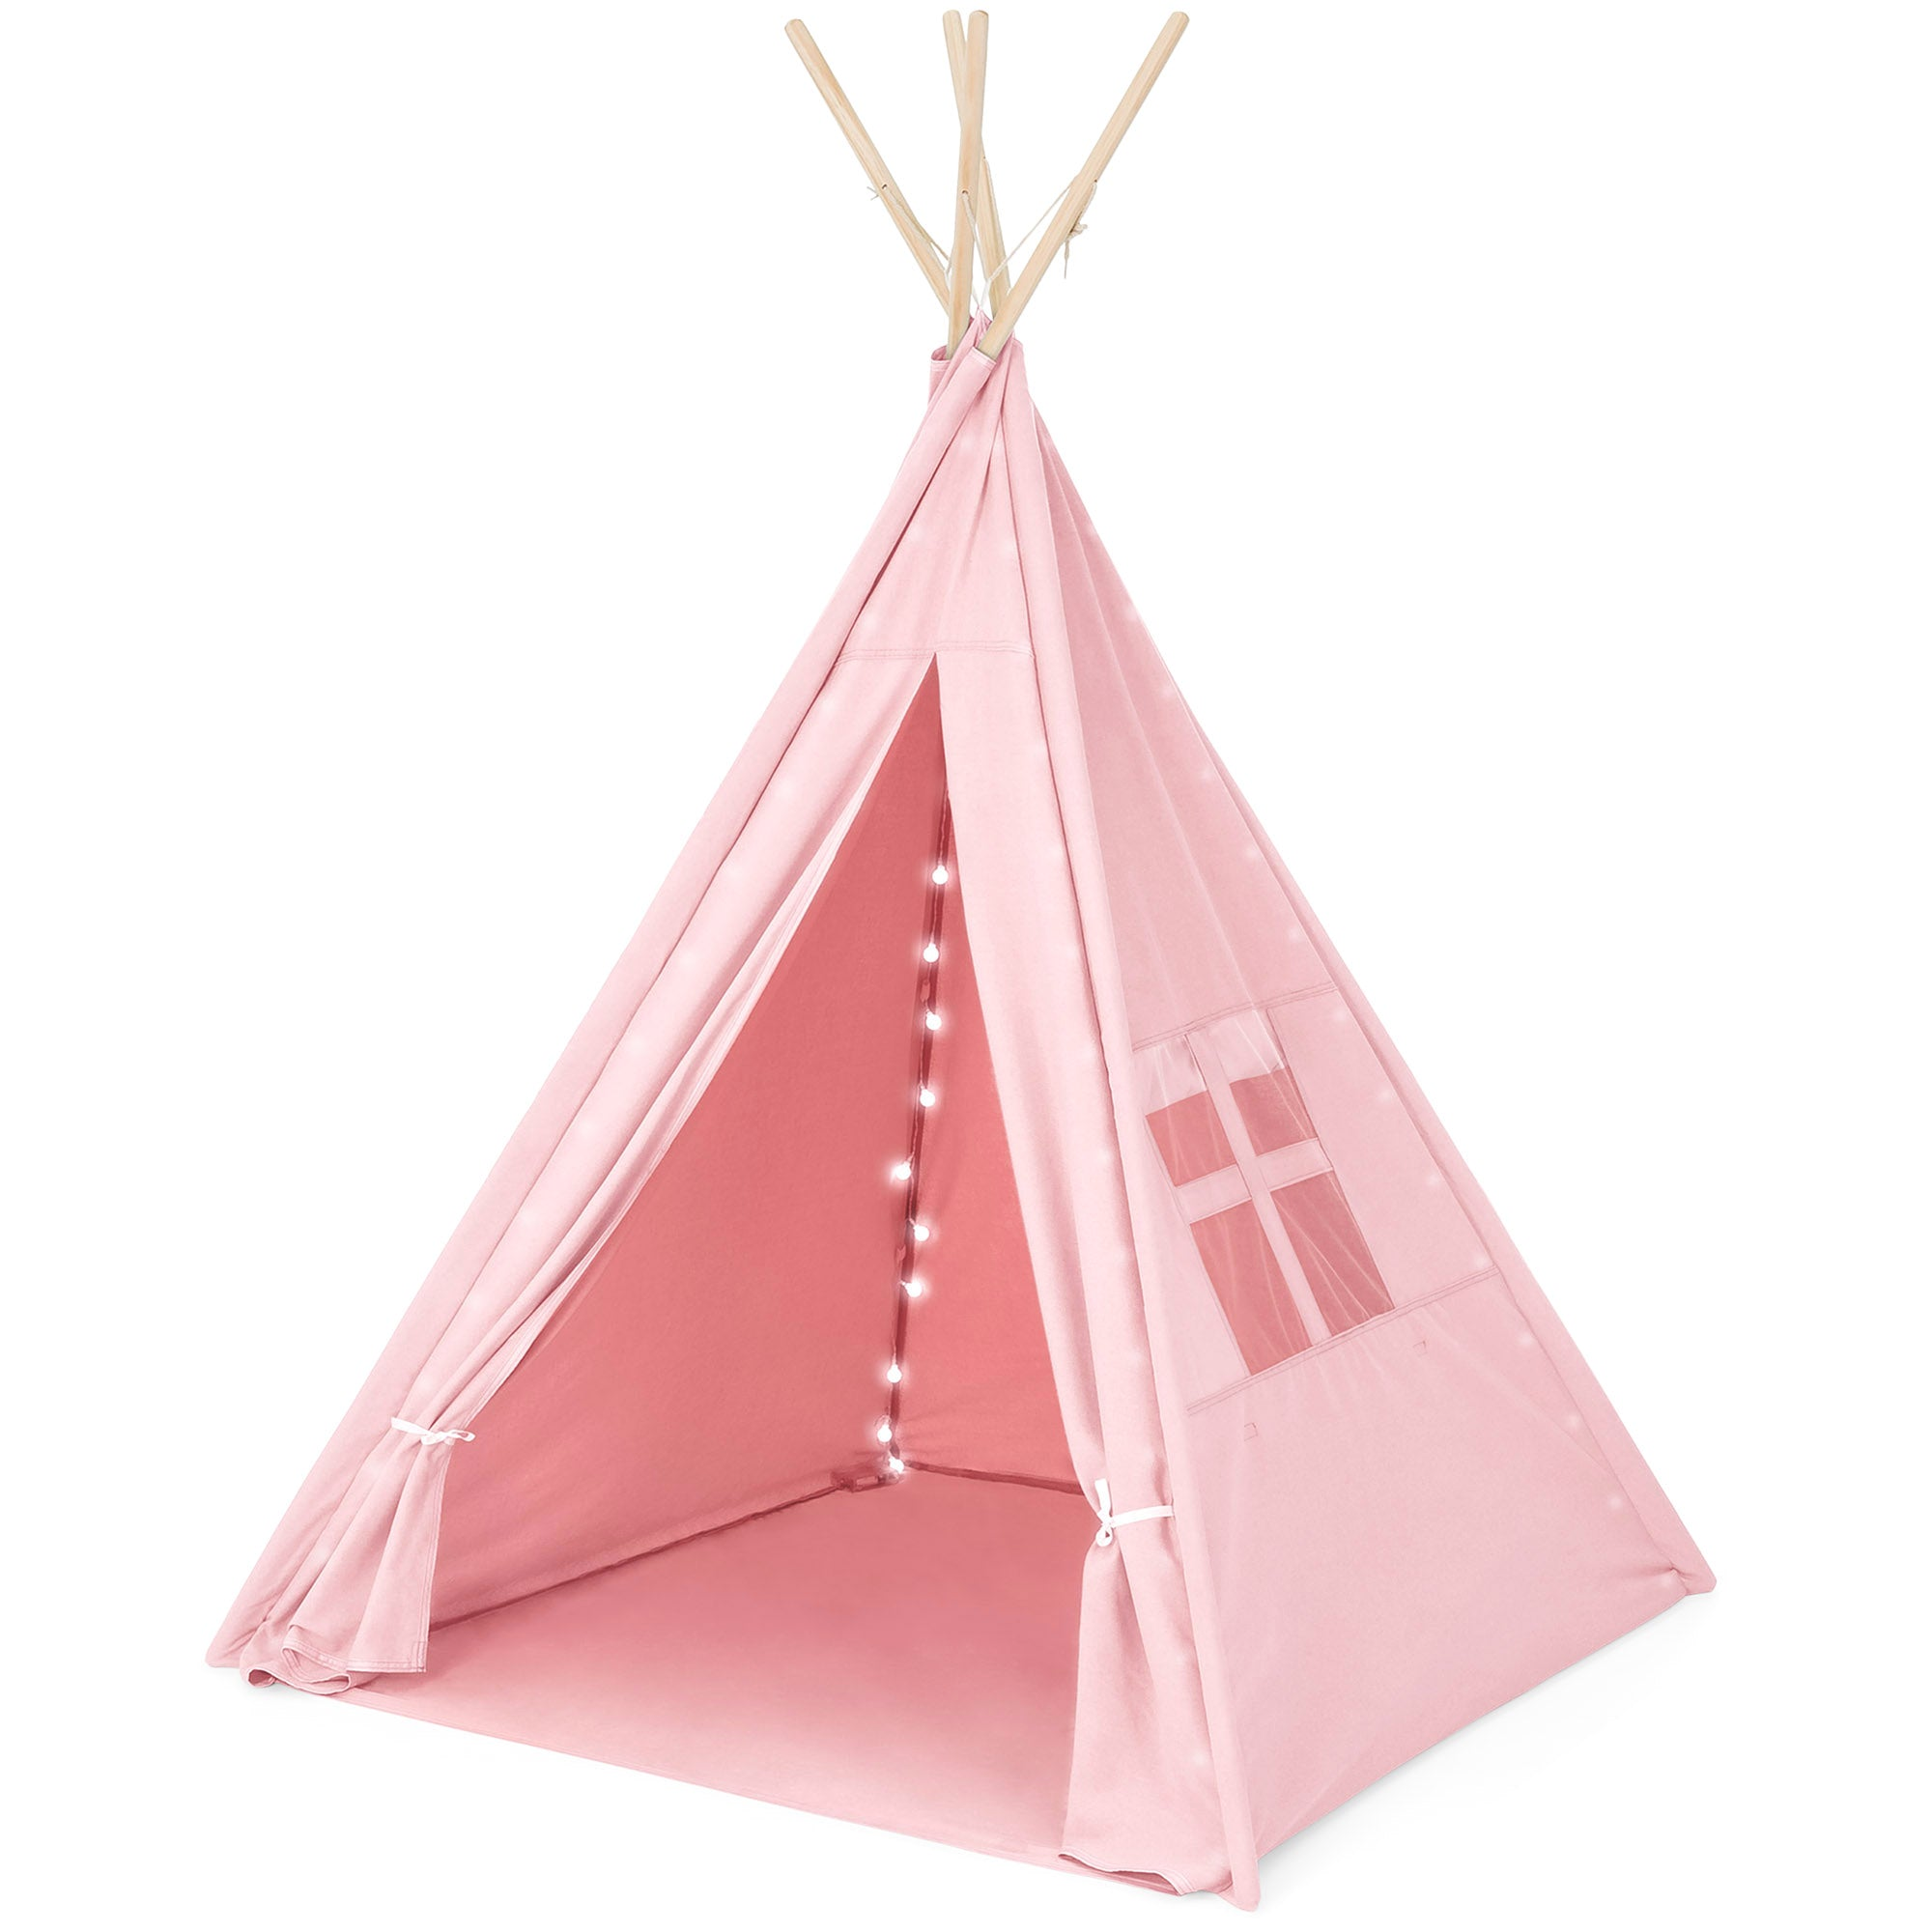 6FT Light Up Teepee Play Tent w/ Carry Case Mat - Pink  sc 1 st  Best Choice Products & 6FT Light Up Teepee Play Tent w/ Carry Case Mat - Pink u2013 Best ...